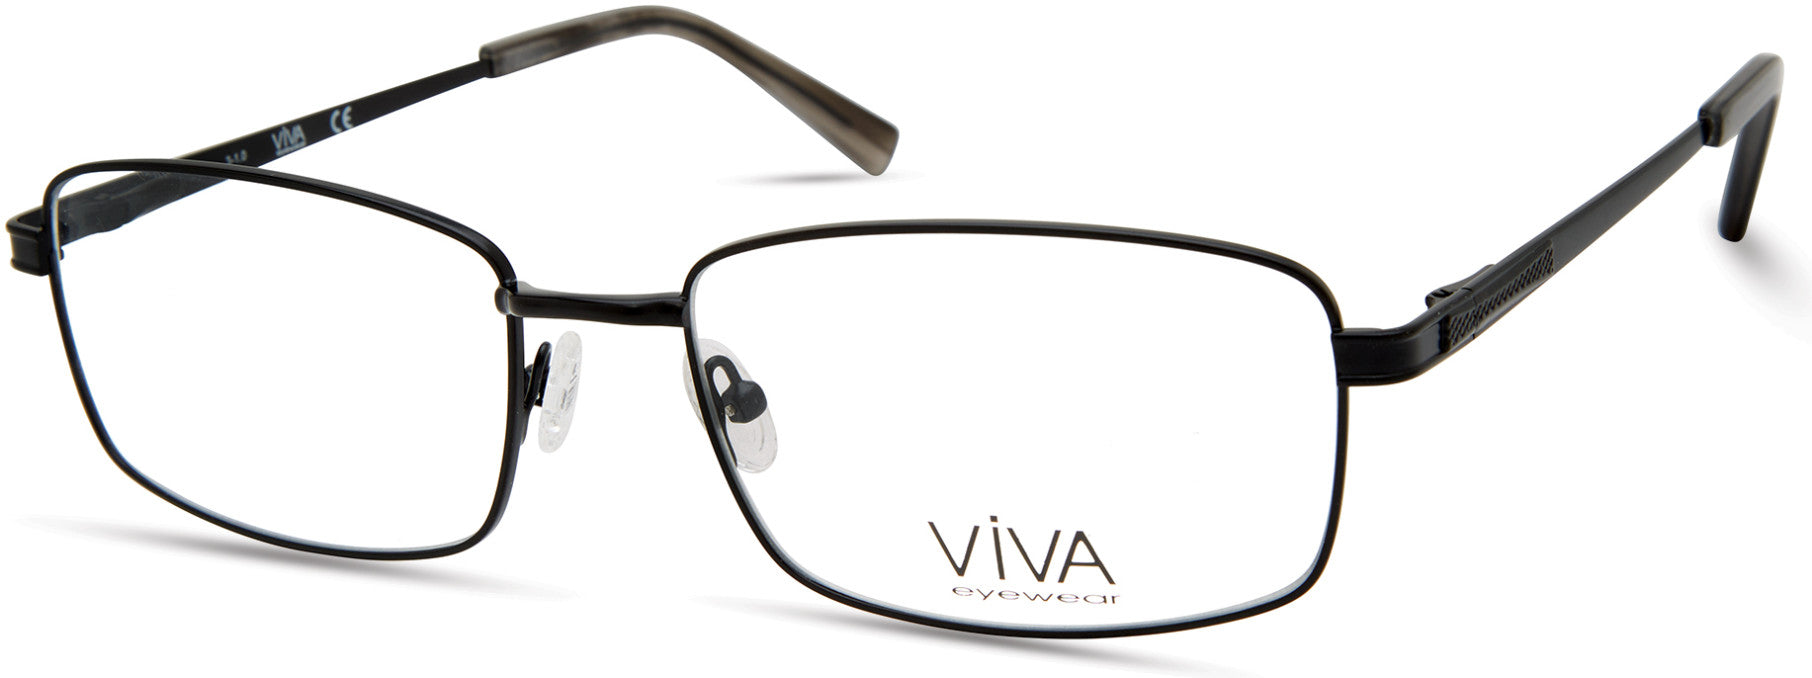 Viva VV4045 Rectangular Eyeglasses For Men